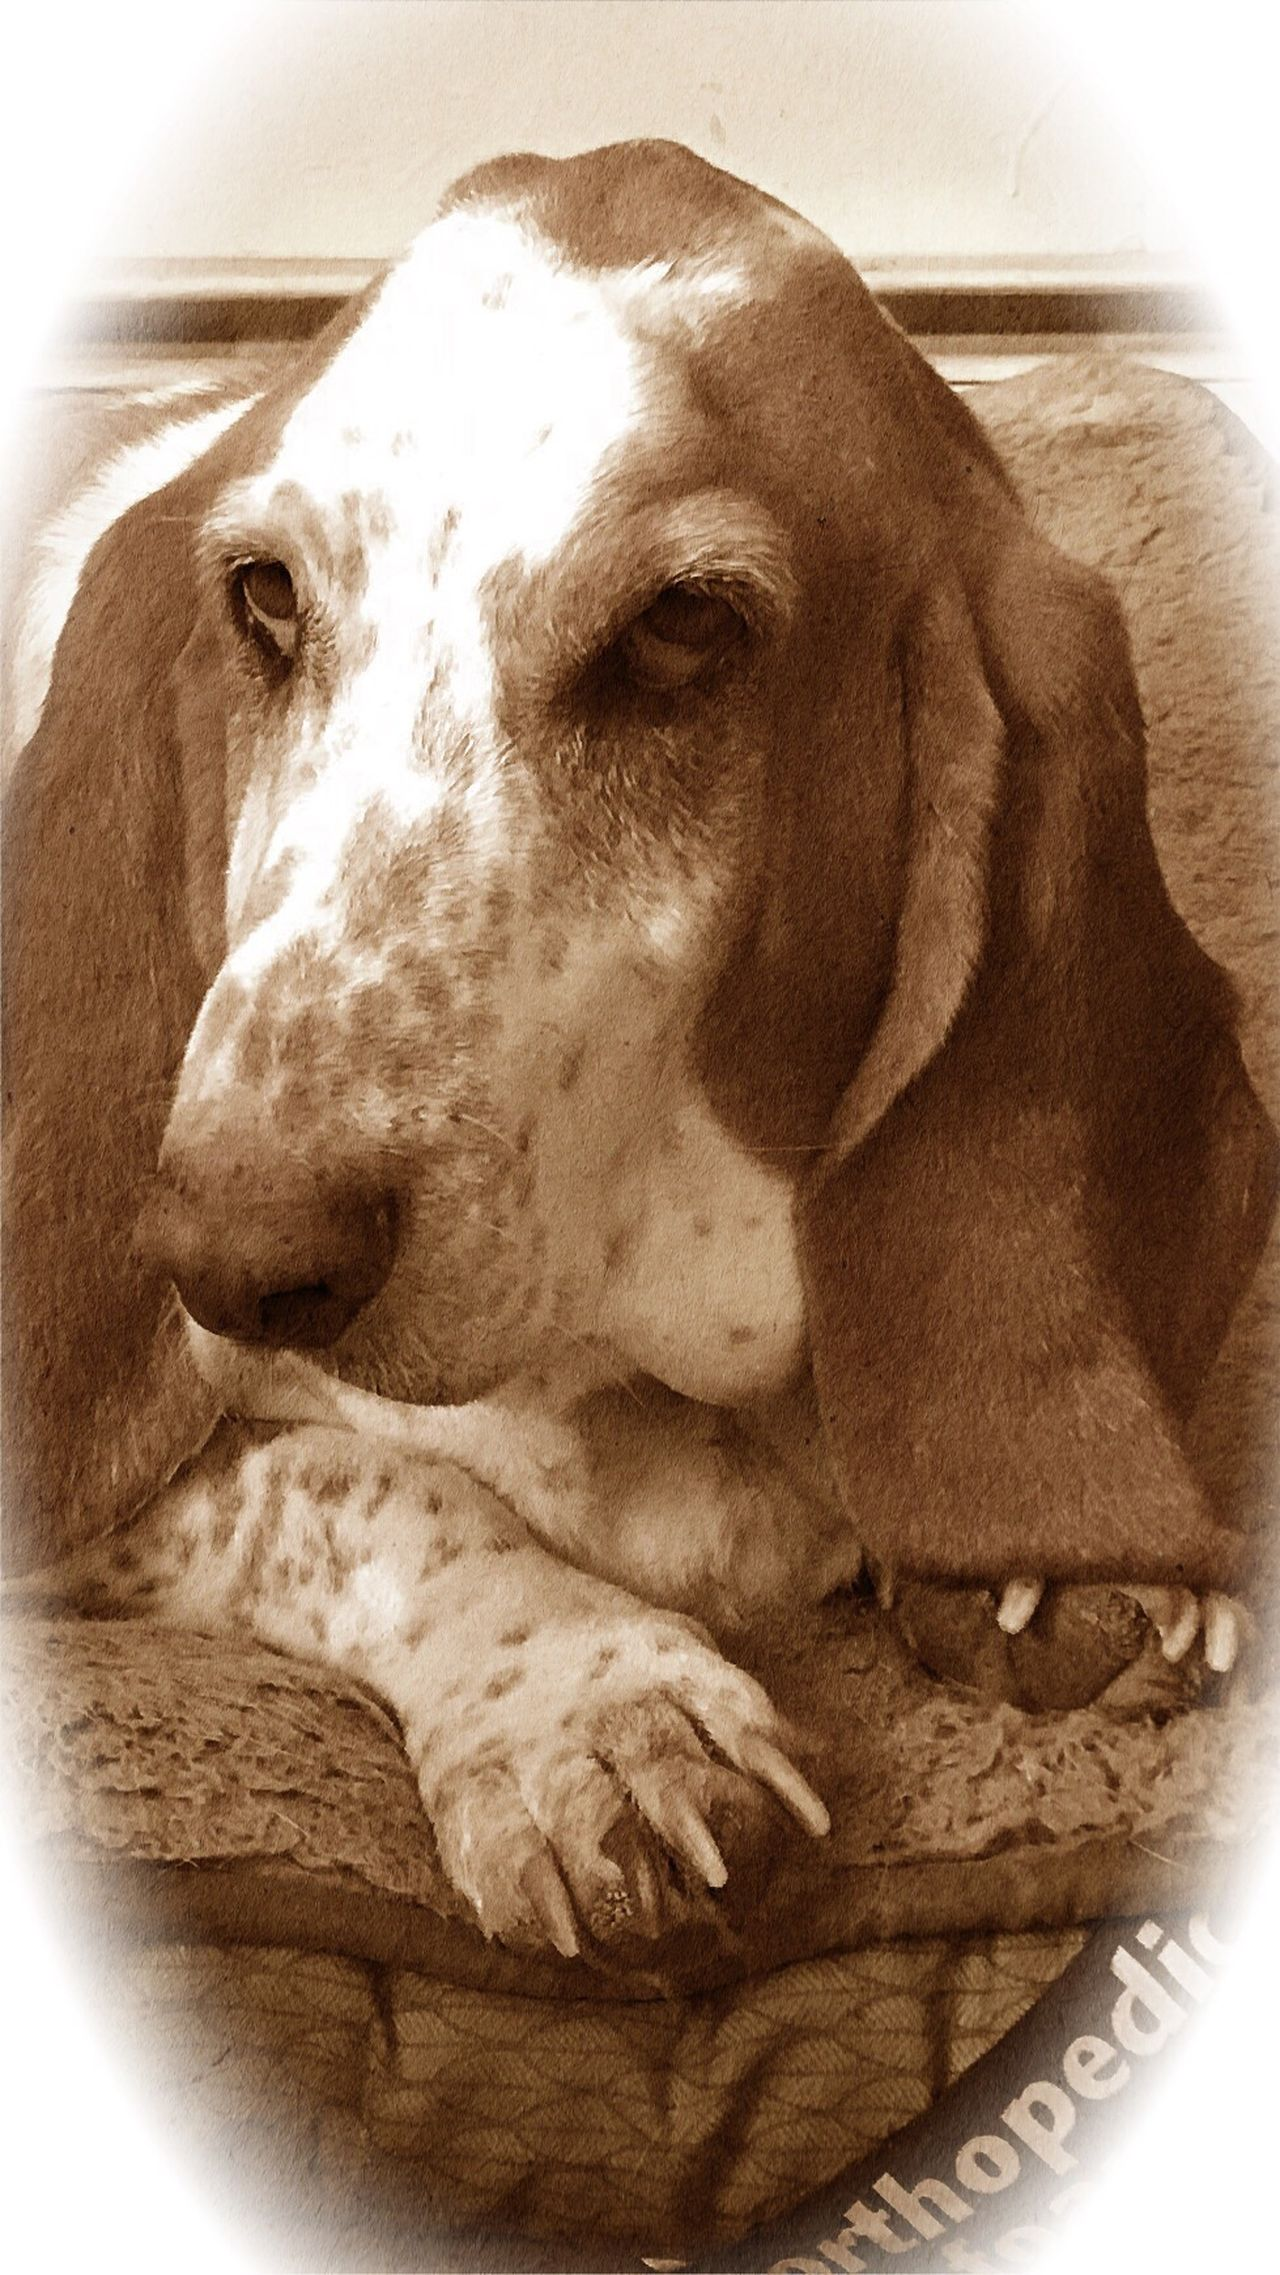 Love Him Domestic Animals One Animal Close-up Pets Indoors  Iphone7 Camerafilters Iphonephotography Ilovemybassethounds Bassethoundsare Best Rescuedbassethound Bassetmoments Looking At Camera Upclose And Personal